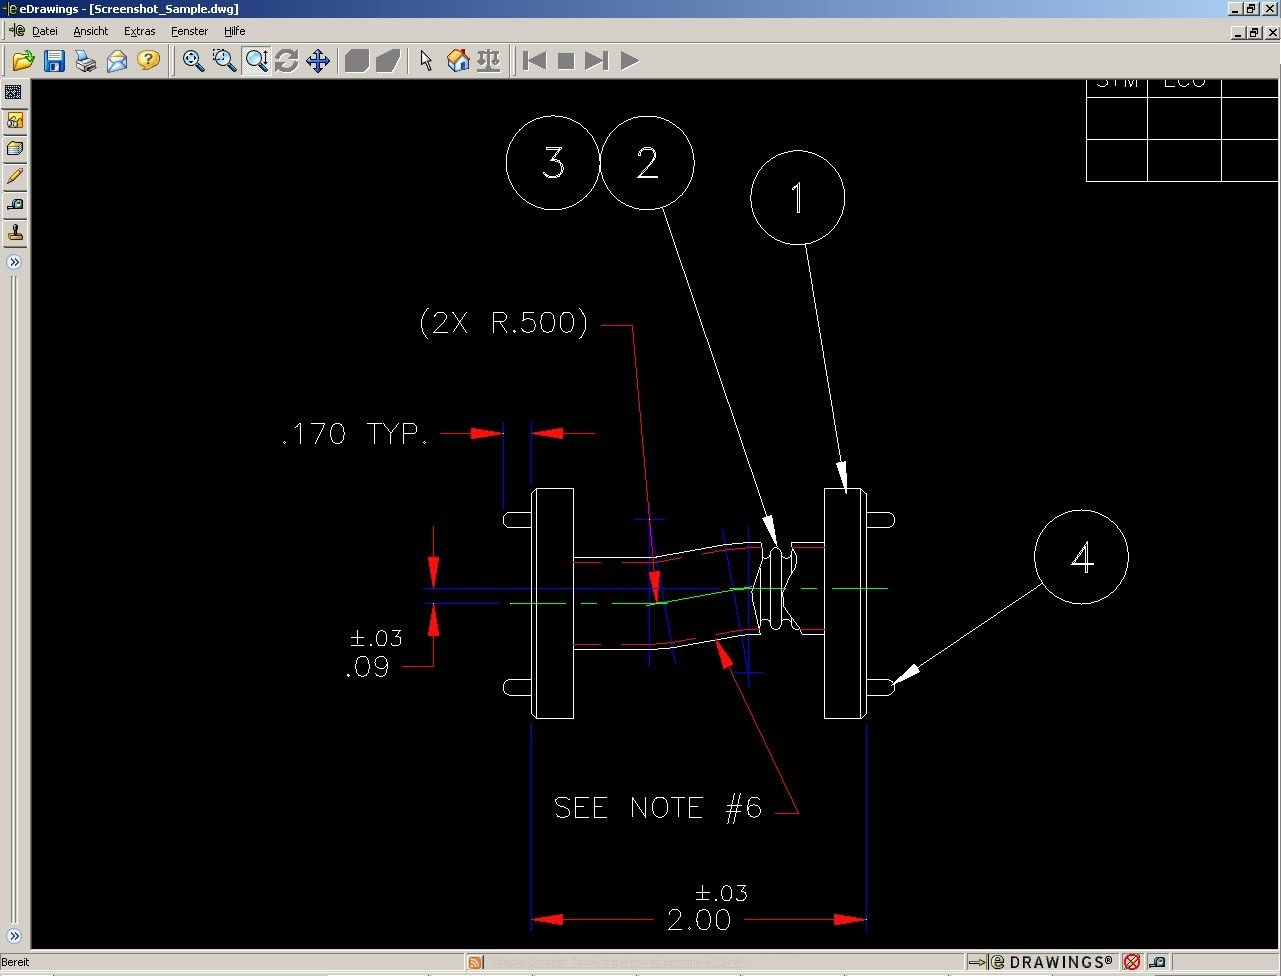 3d Grafik Heise Download Schematic Software Edrawings Viewer